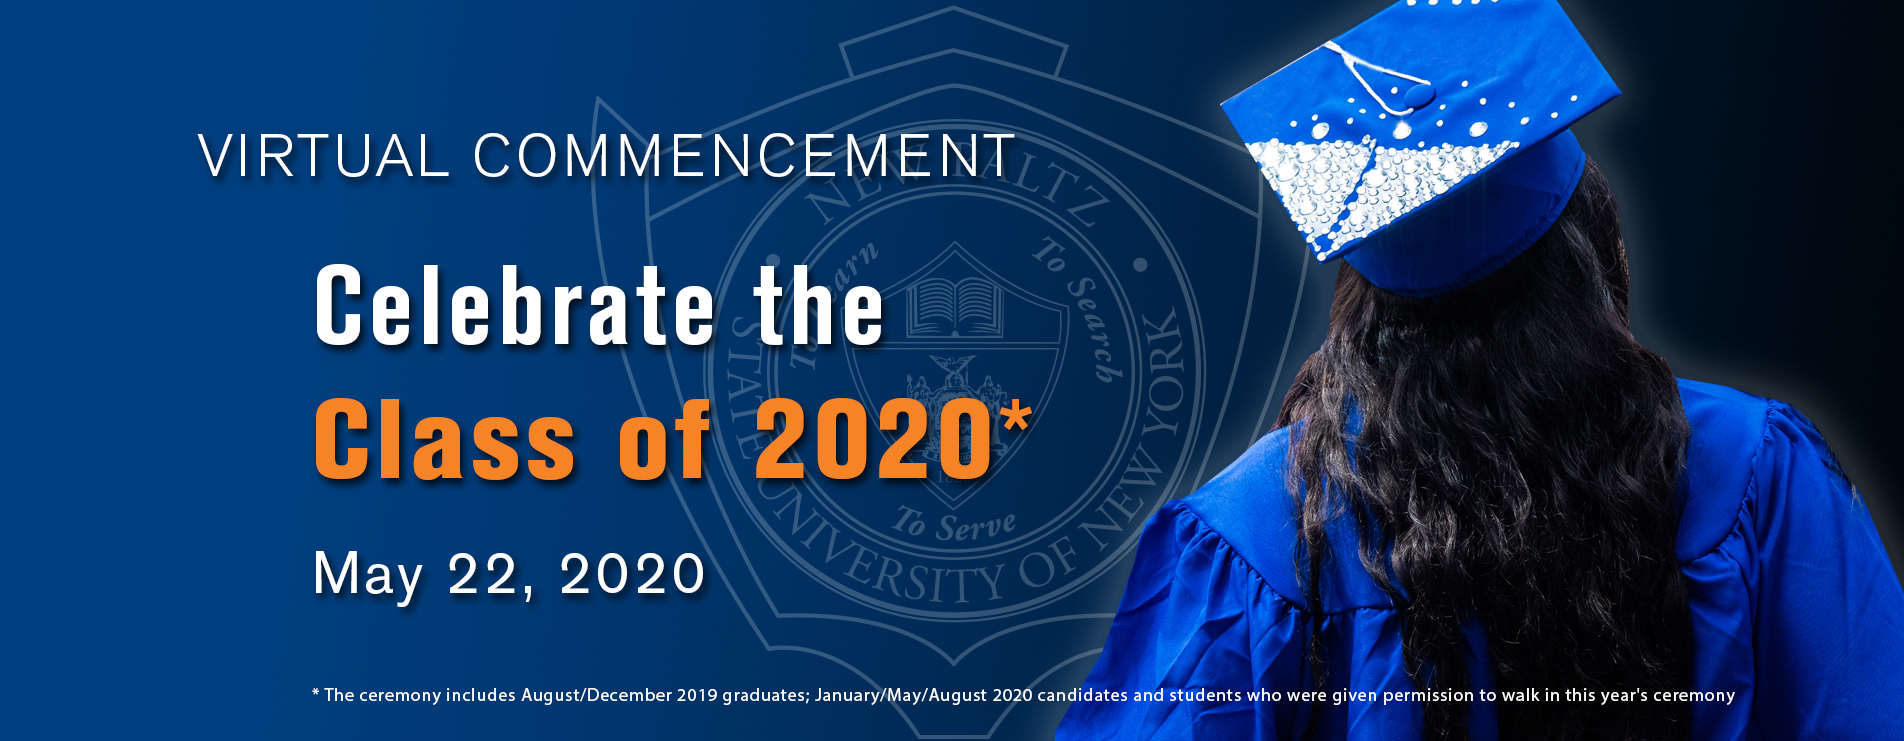 Suny New Paltz - Virtual Commencement 2020 Within Suny New Paltz School Year Calendar